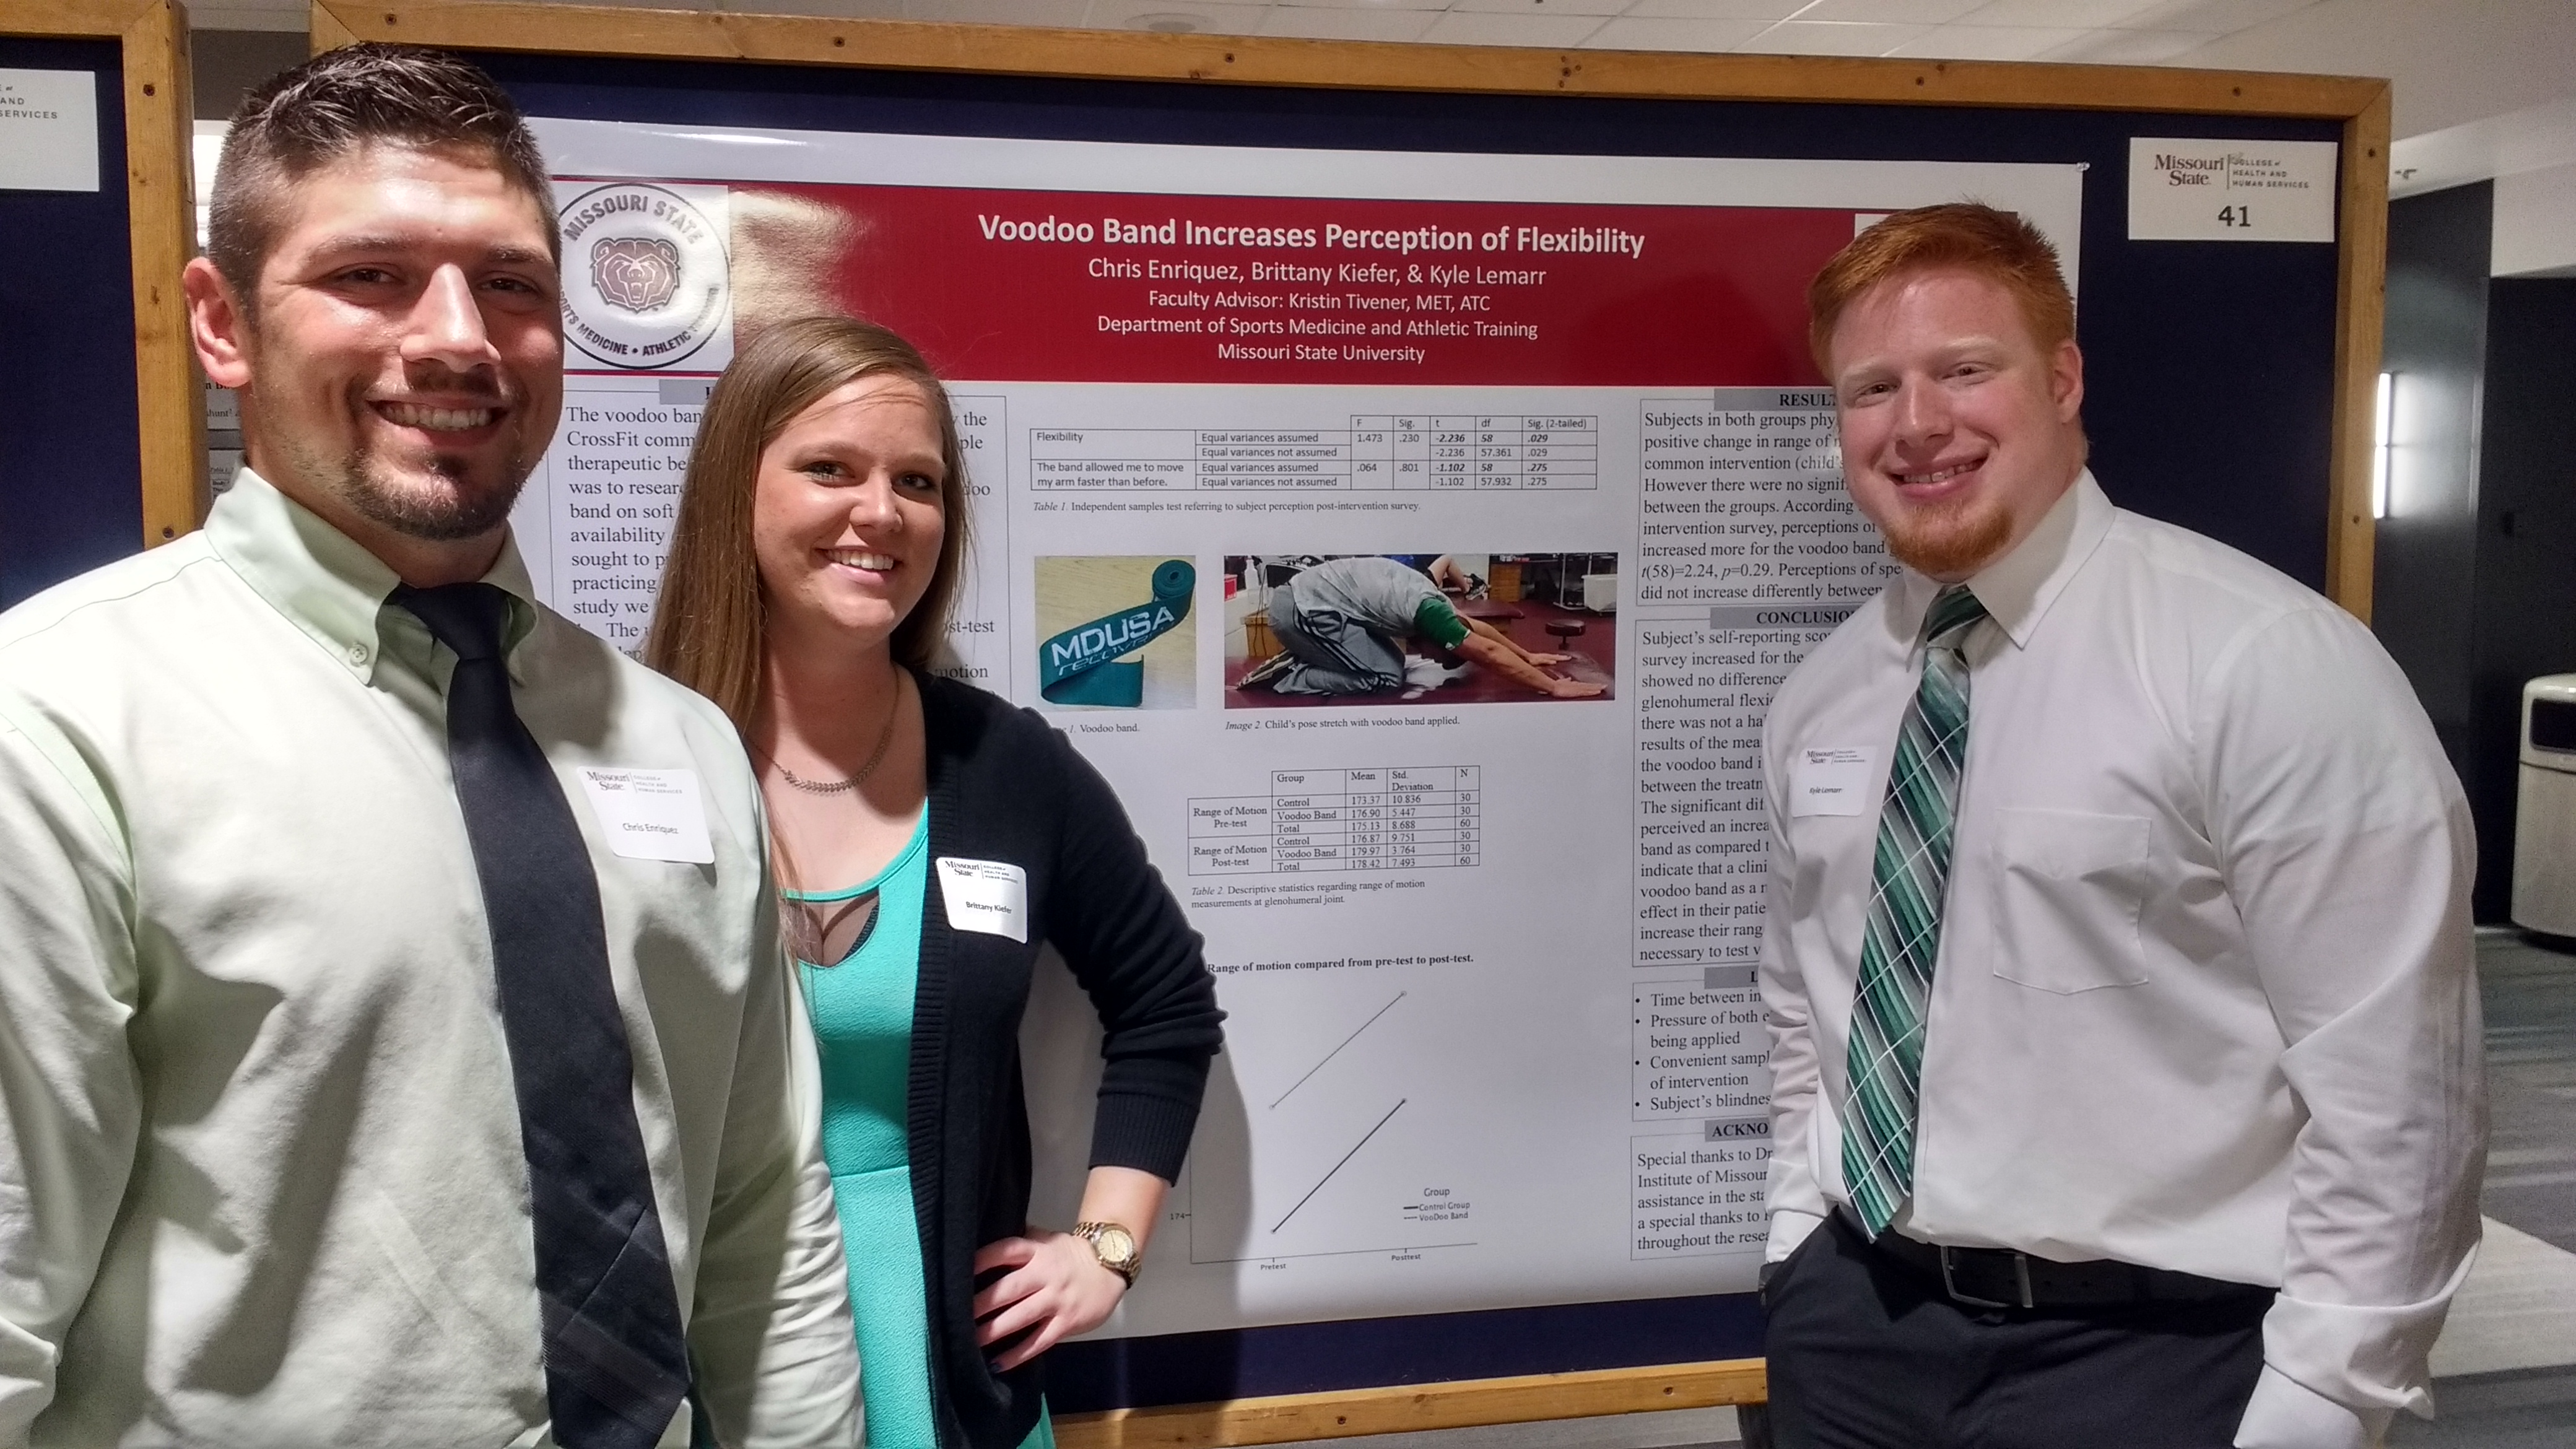 2016 CHHS Student Research Symposium